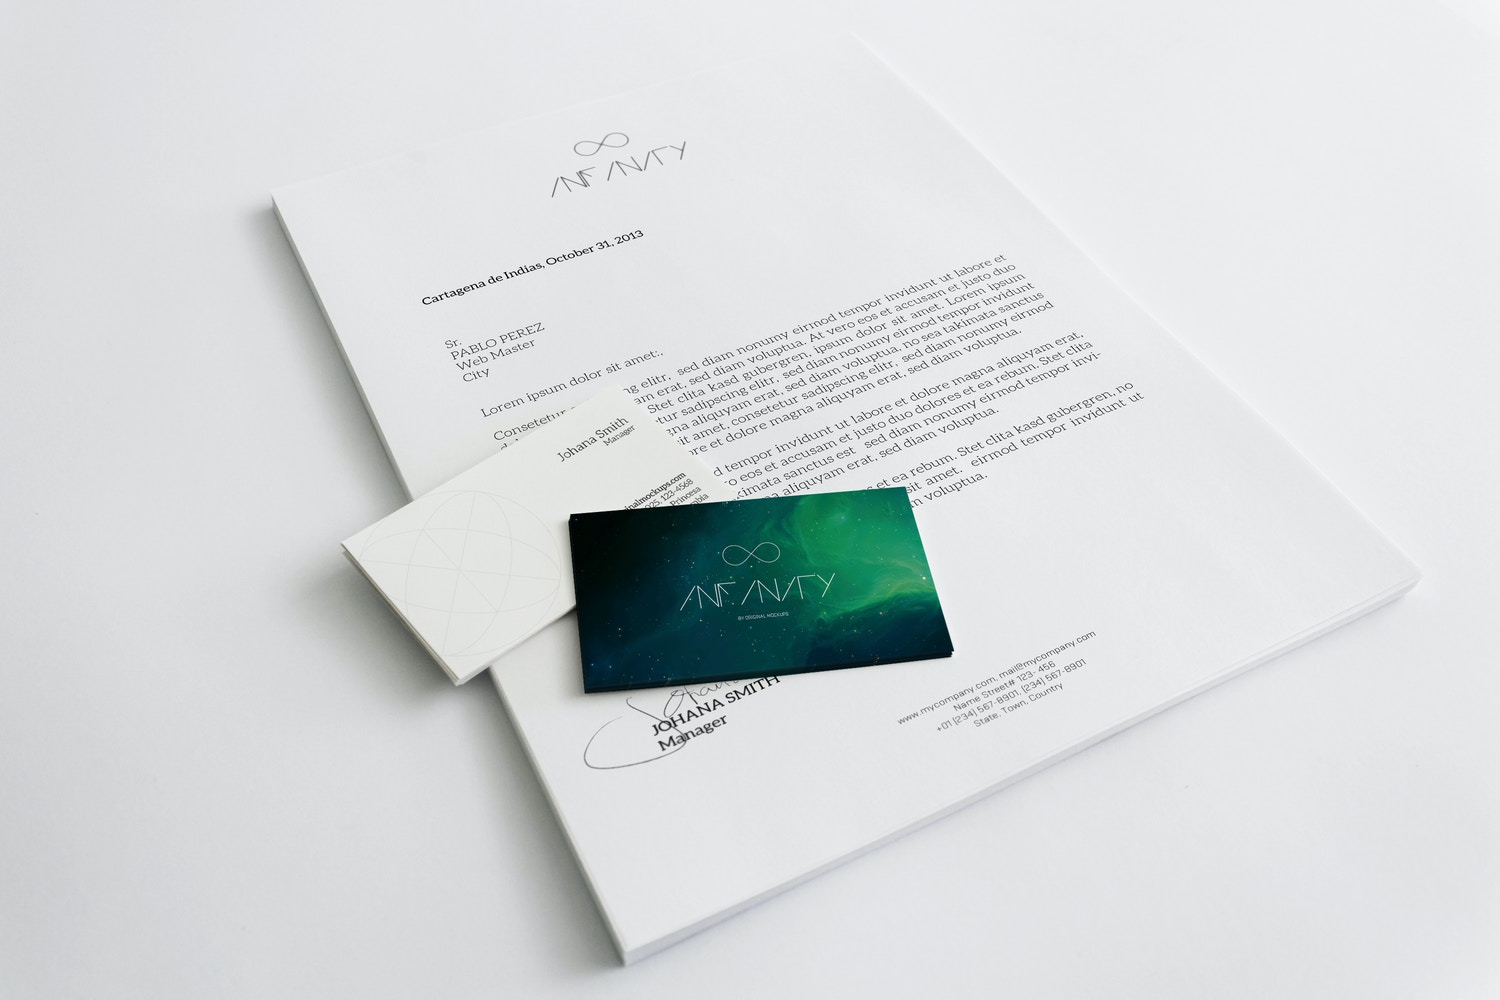 A4 Letterhead and Business Cards Mockup por Original Mockups en Original Mockups